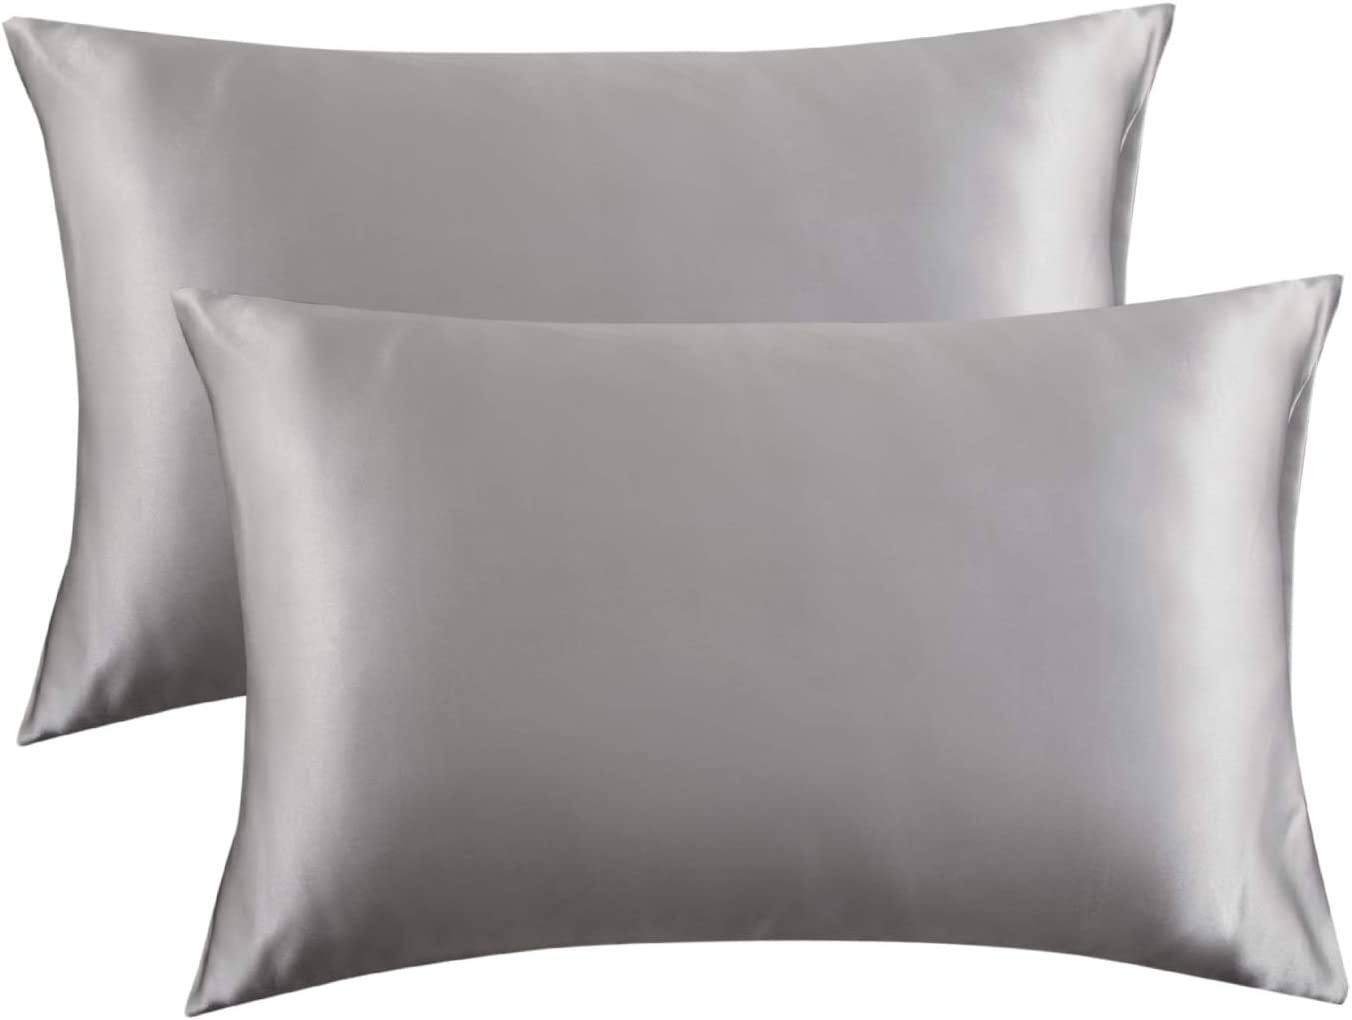 Bedsure Satin King Size Pillow Cases Set of 2, Silver Grey, 20x40 inches - Pillowcase for Hair and Skin - Satin Pillow Covers with Envelope Closure